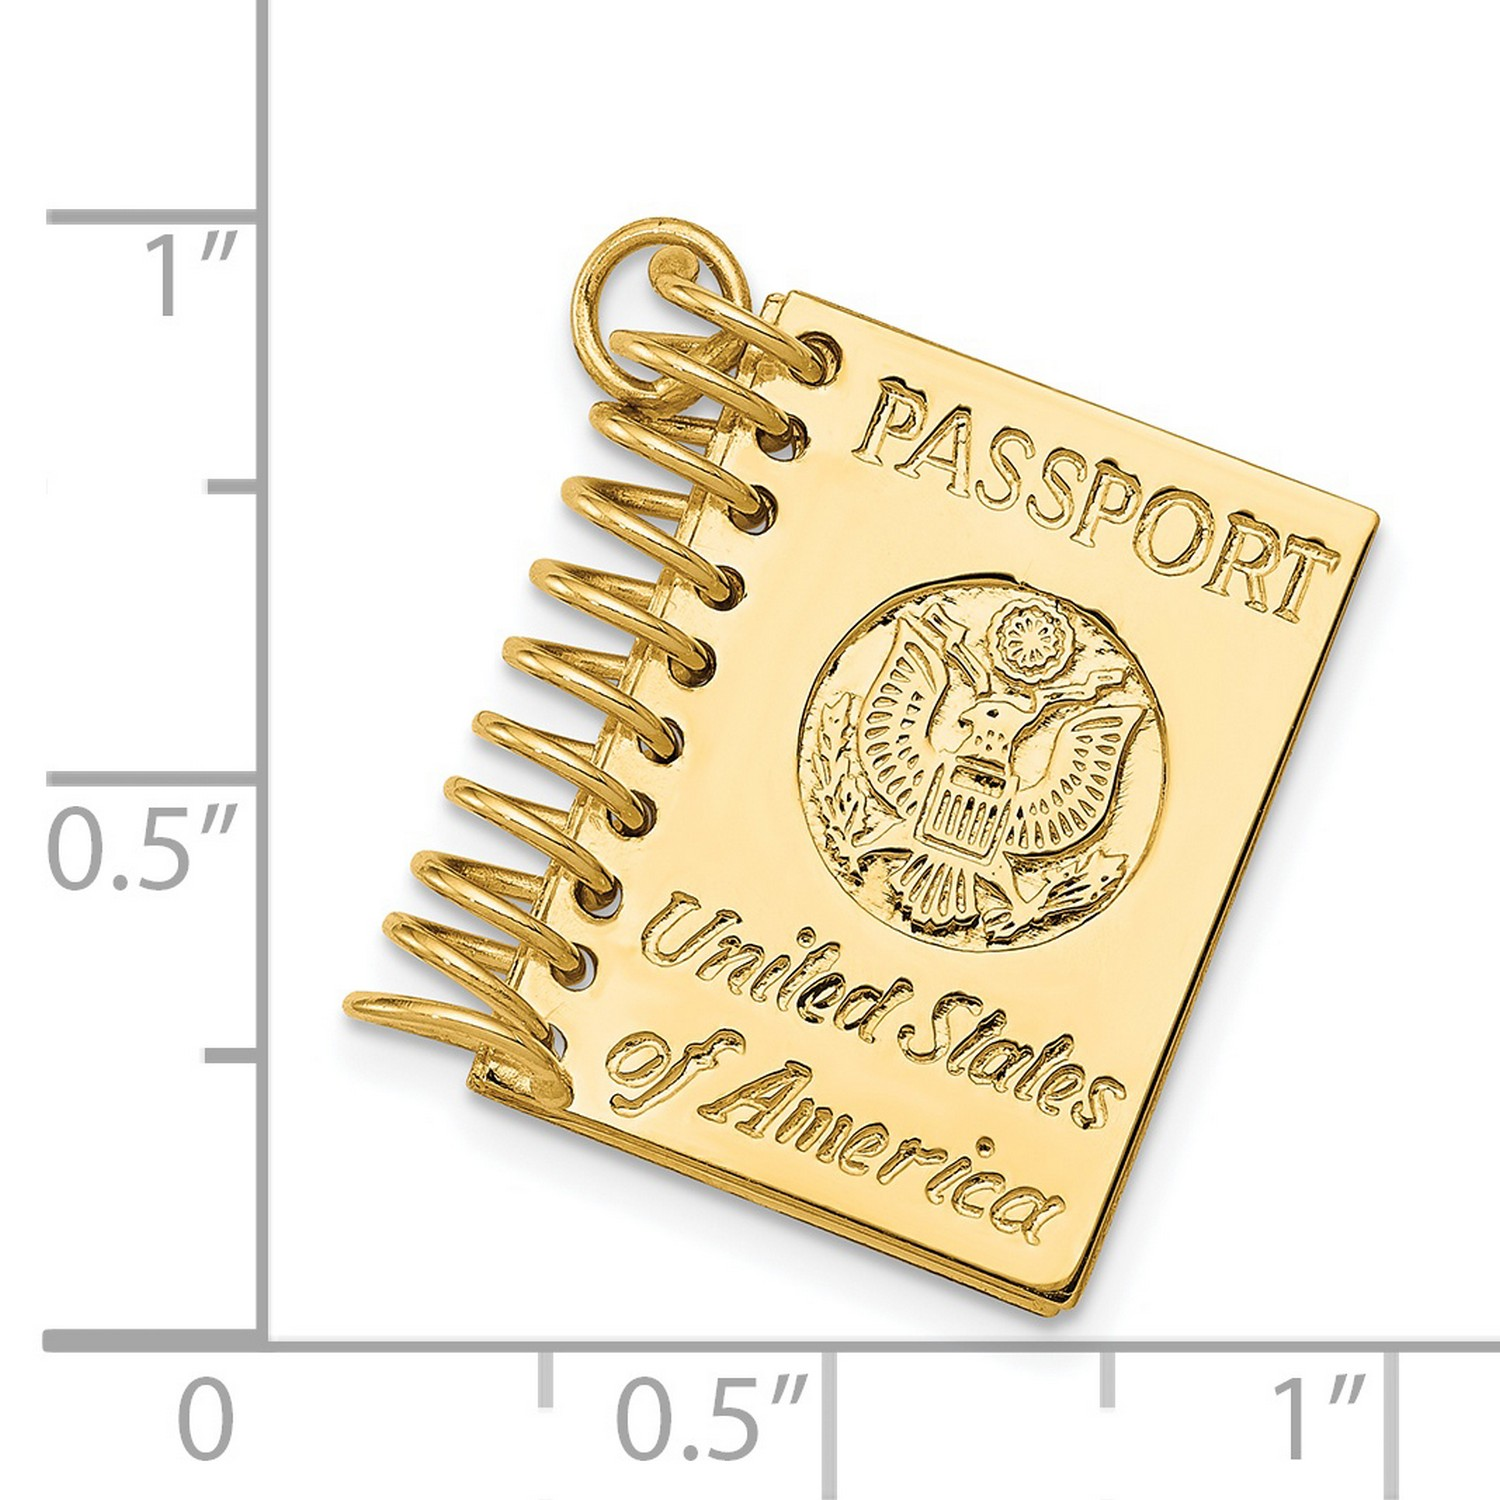 14k Yellow Gold United States Of America Words On Passport